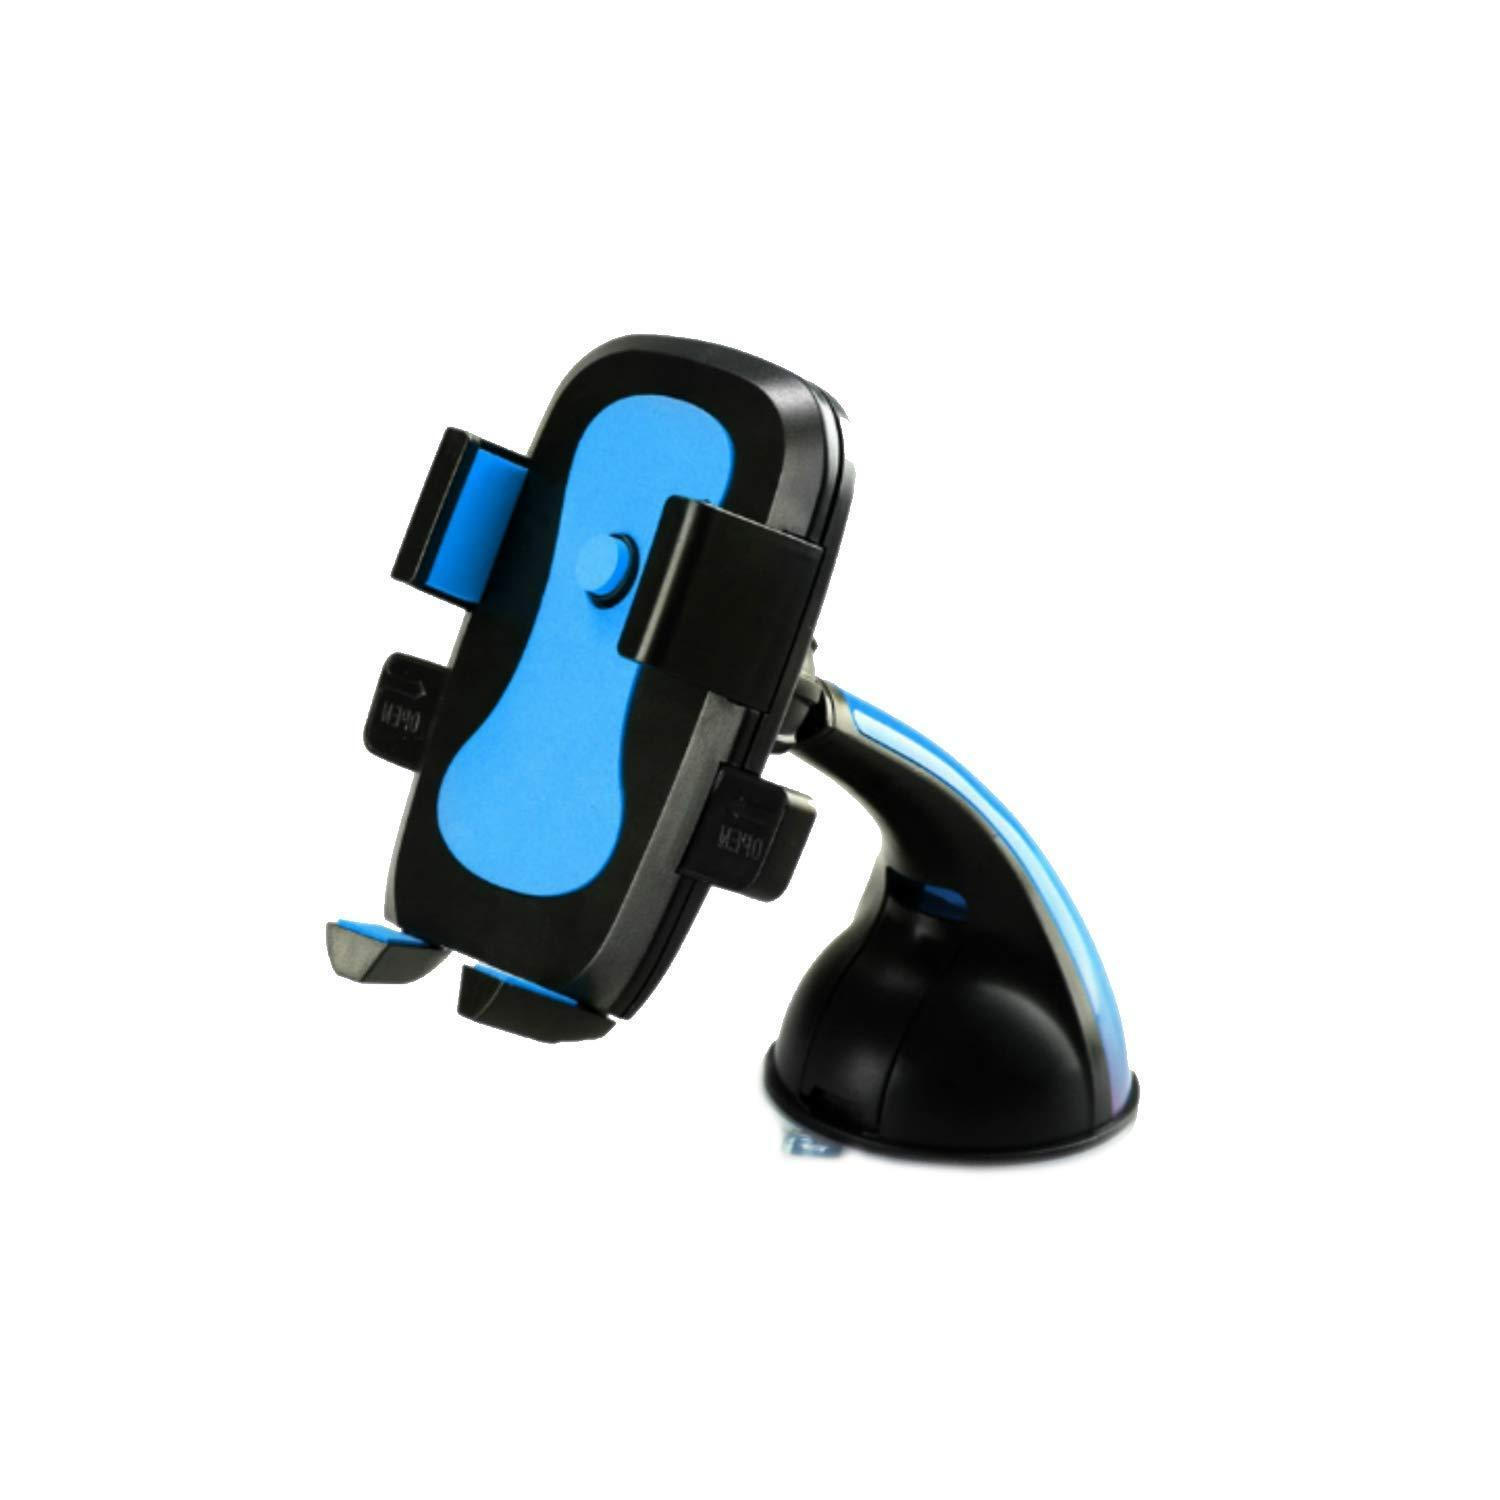 classic-mobile-holder-for-cars-360-degree-rotation